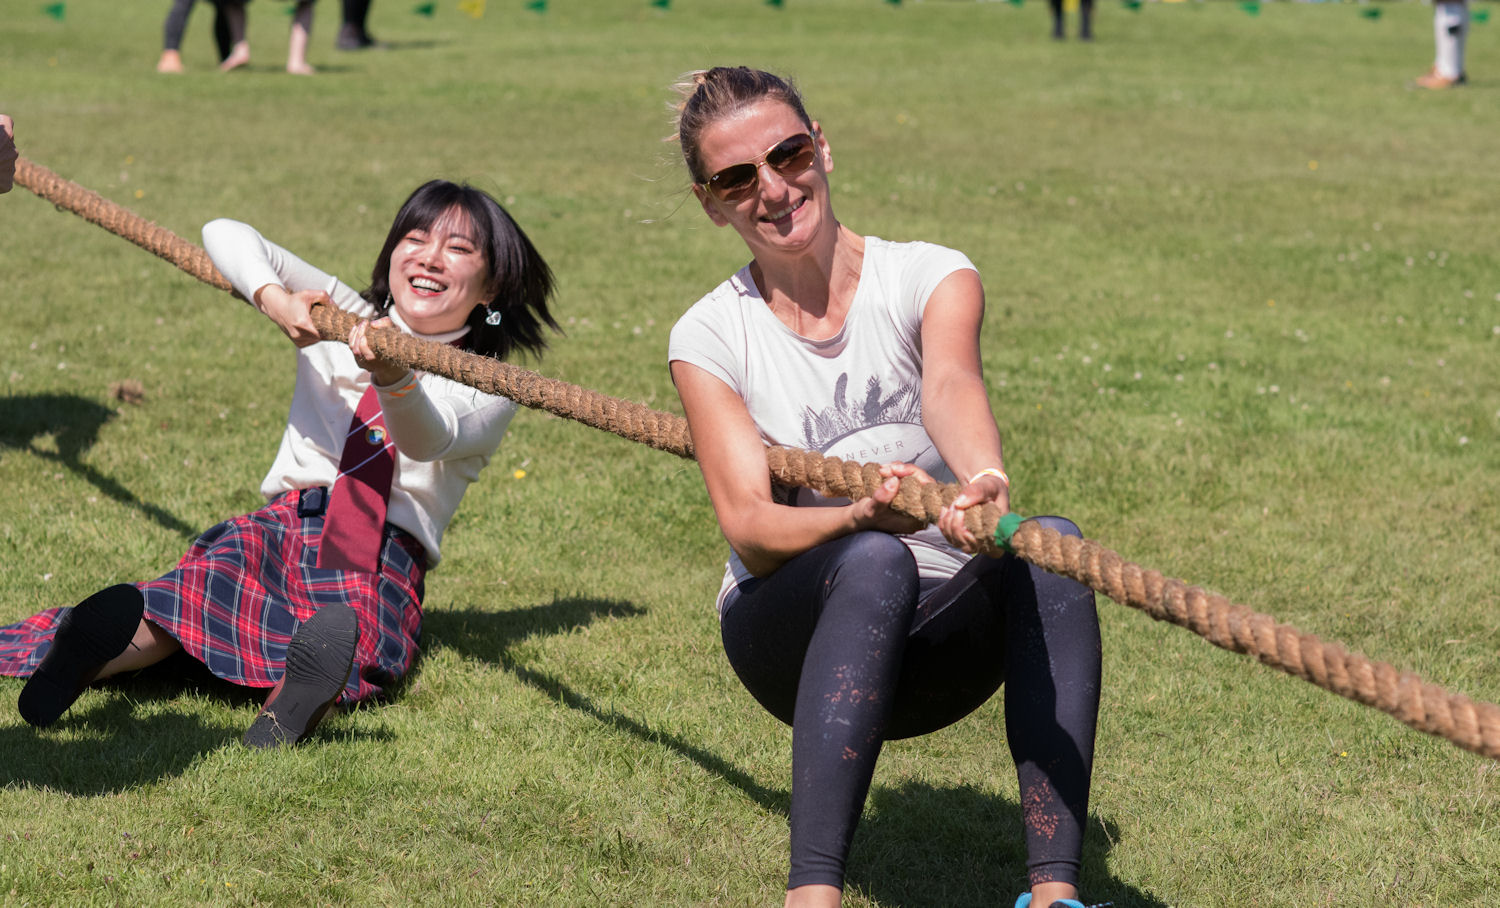 Highland Games Image 25